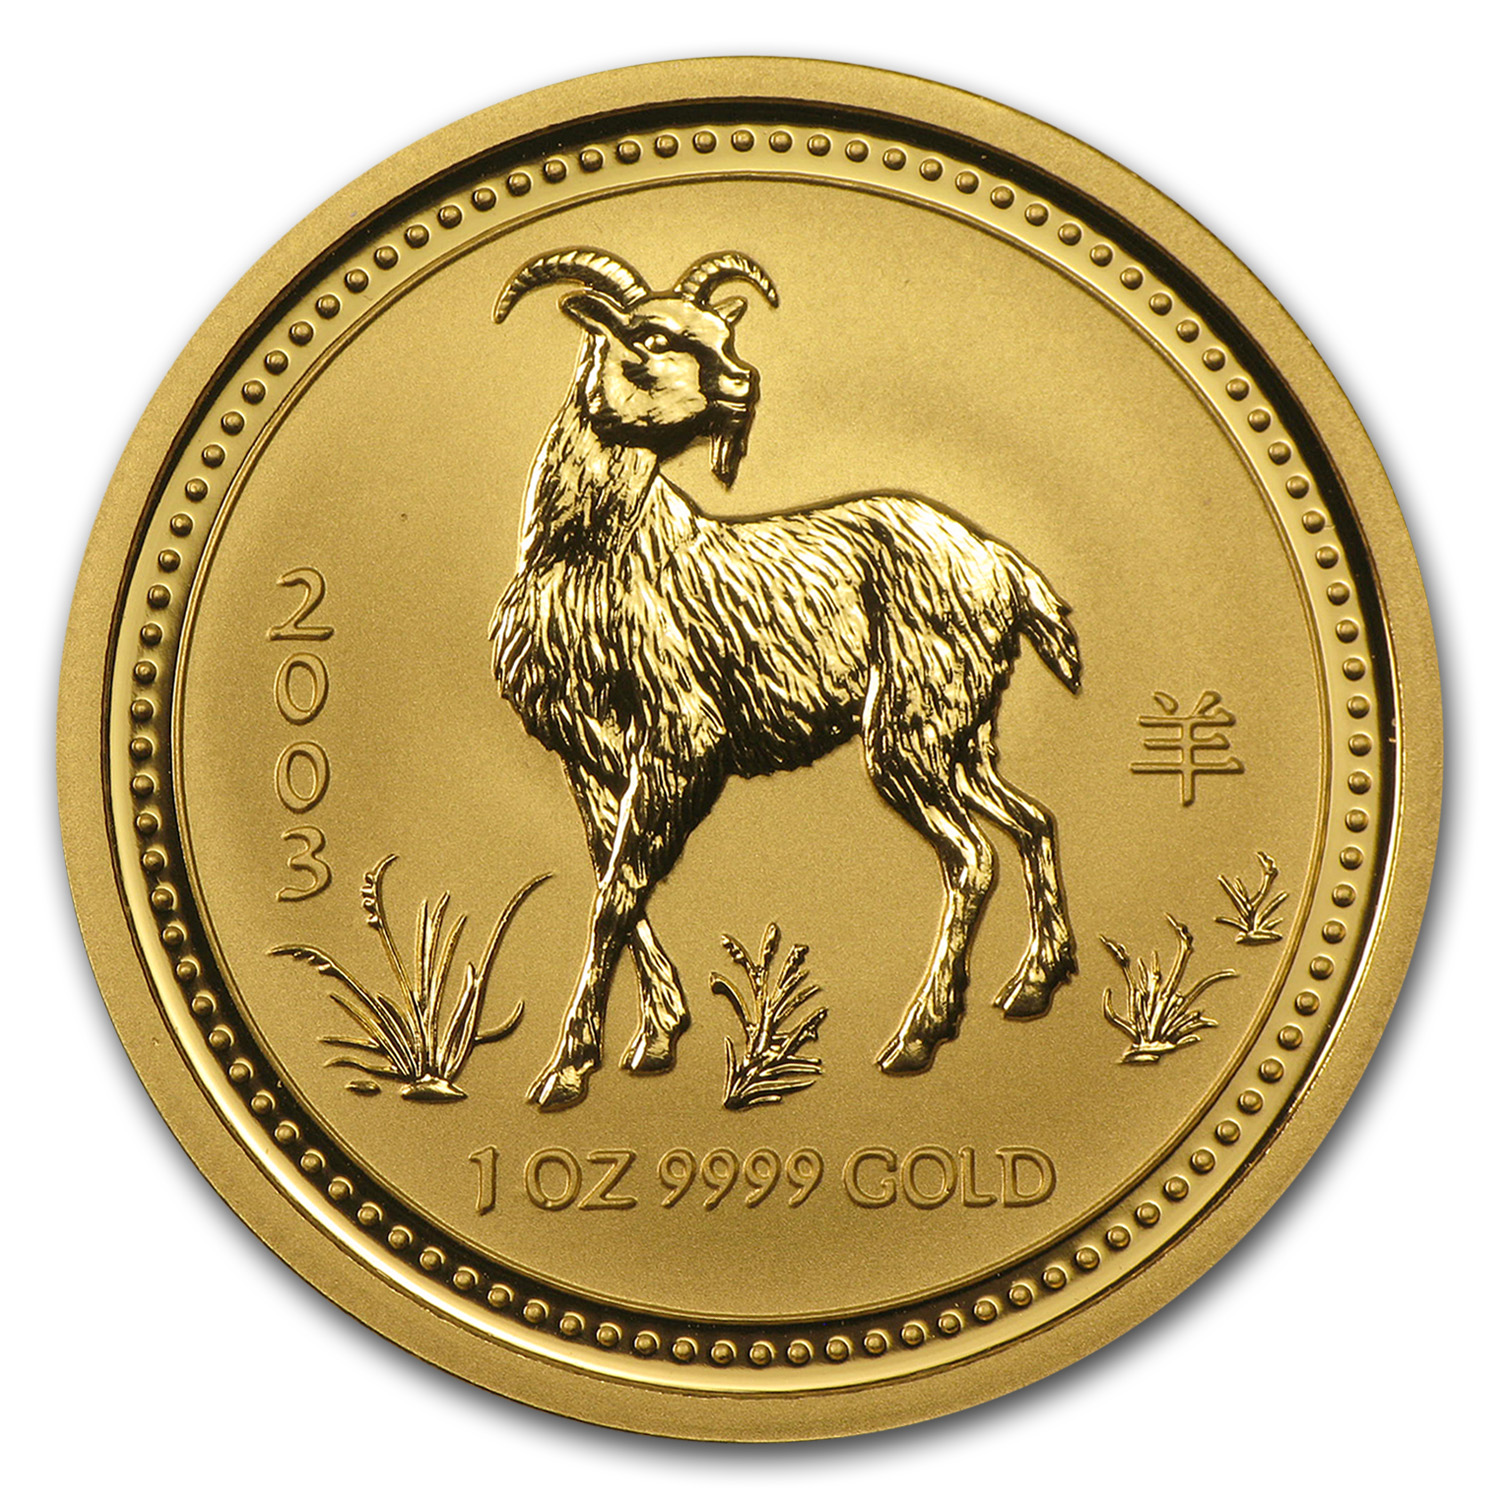 2003 1 oz Gold Lunar Year of the Goat BU (Series I)